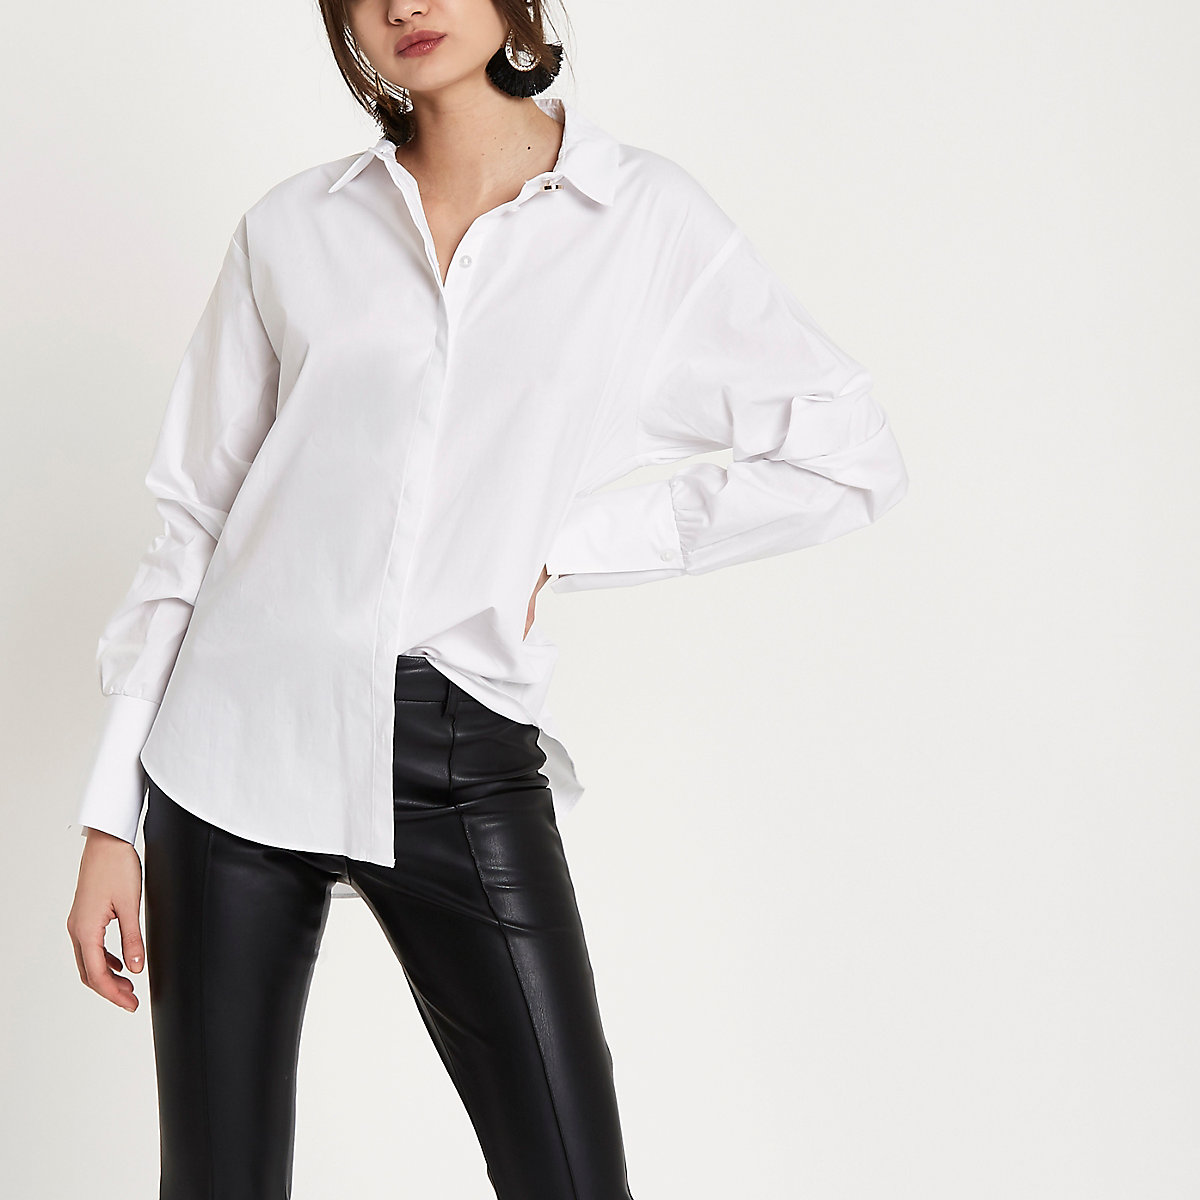 White long ruched sleeve shirt